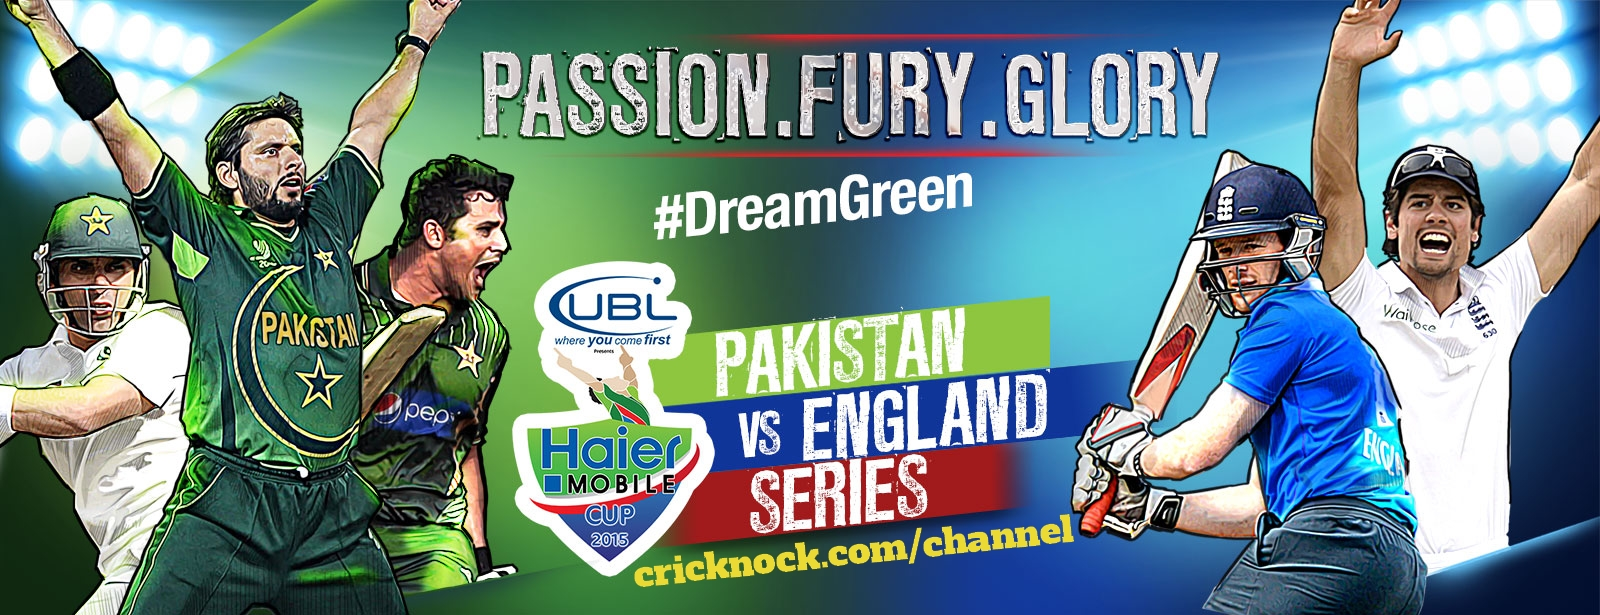 Pakistan vs England 2015